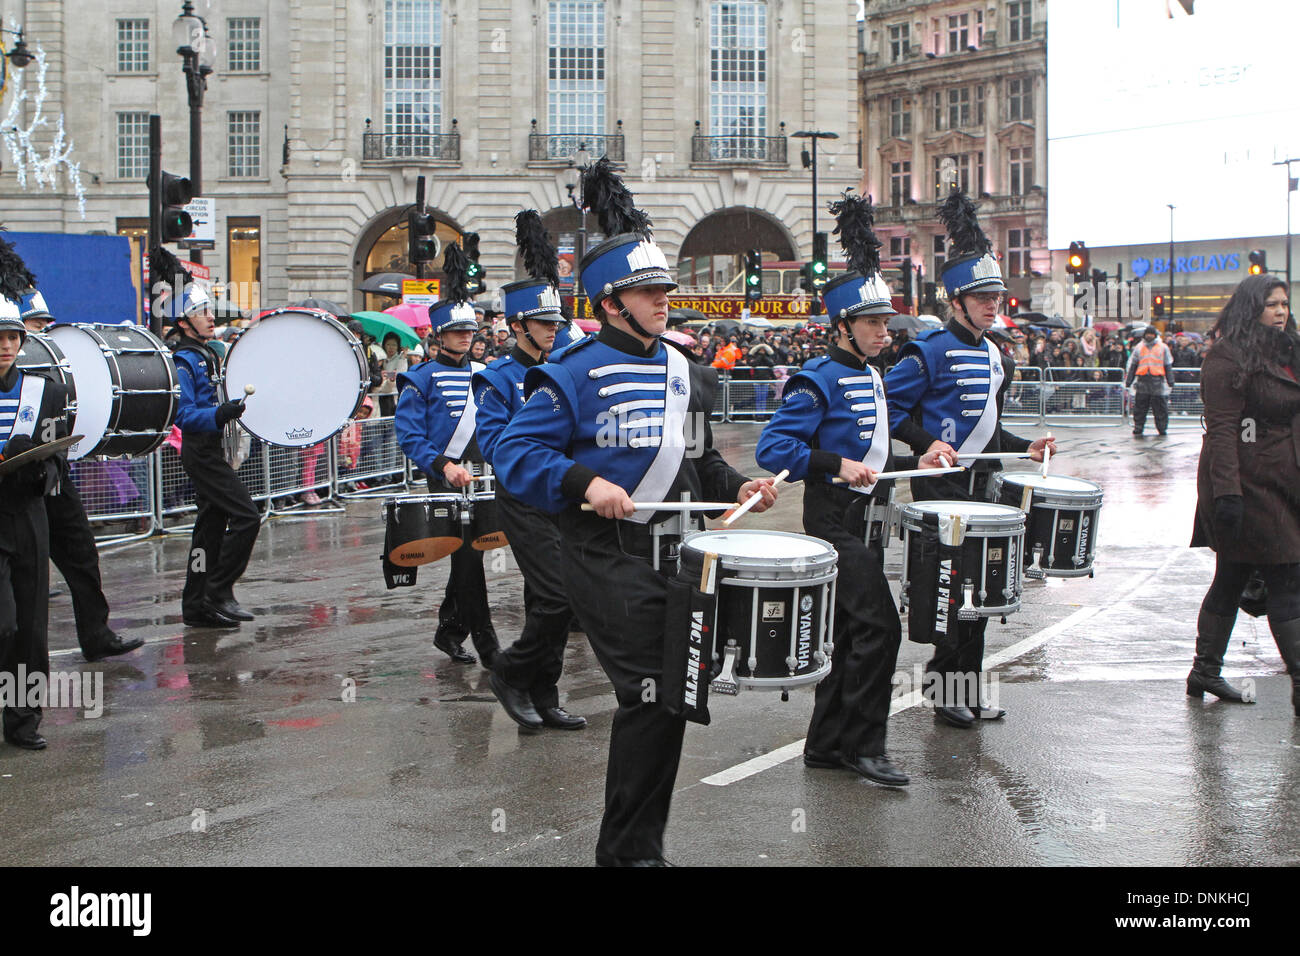 London,UK,1st January 2014,J.P Taravella high school from Florida playing at the London's New Year's Day Parade 201 Credit: Keith Larby/Alamy Live News - Stock Image